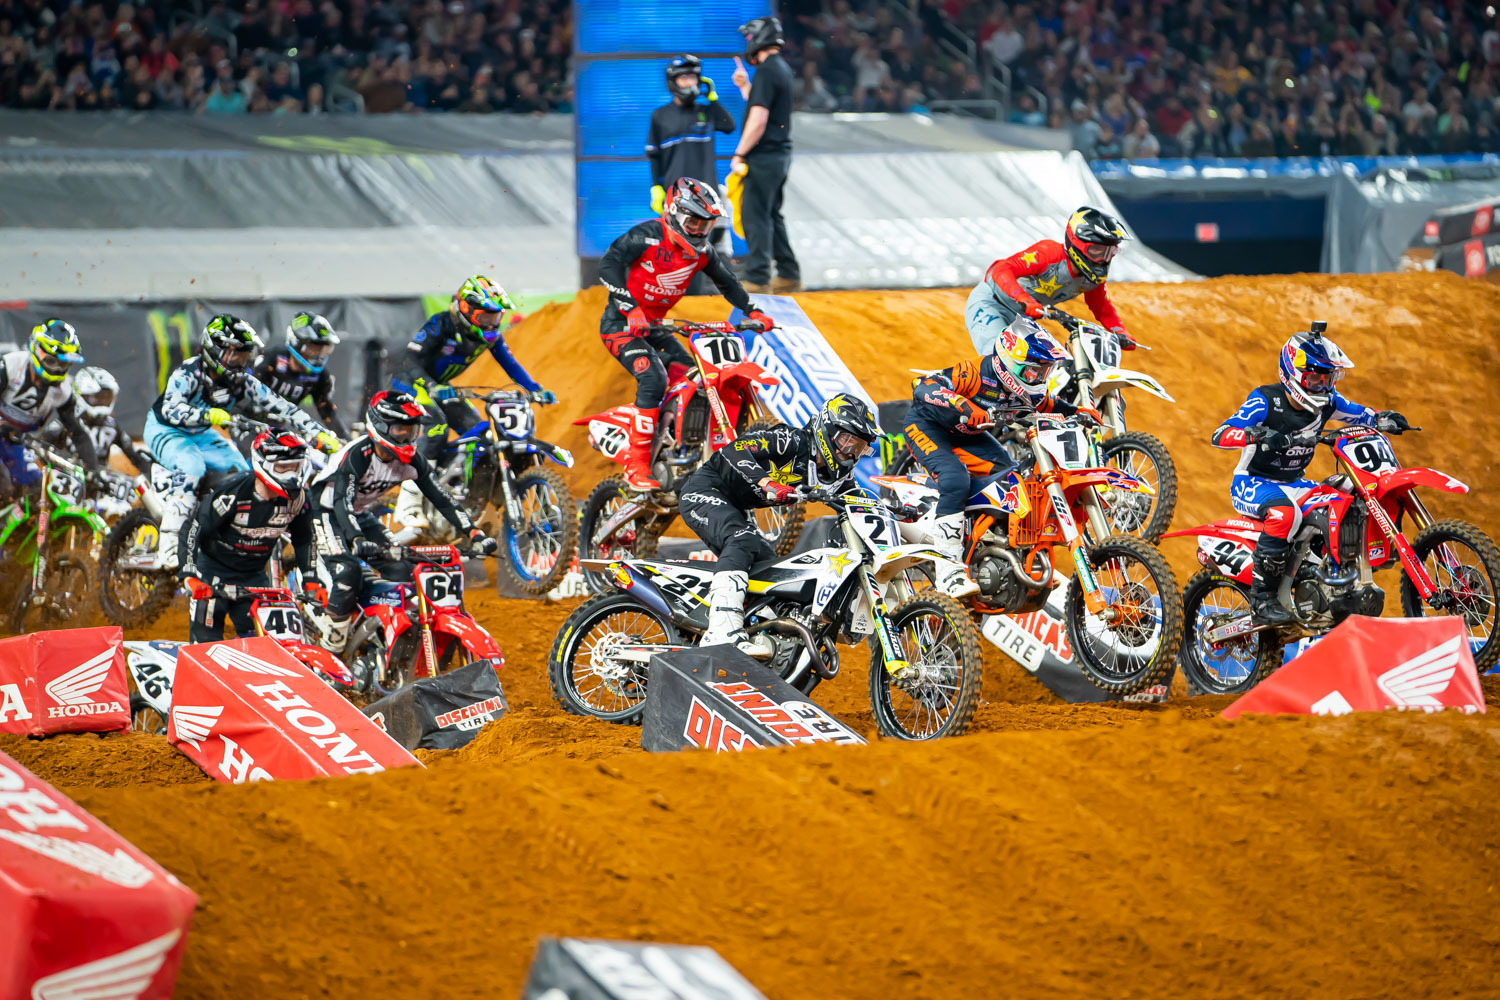 2020-ARLINGTON-SUPERCROSS_KICKSTART_0068